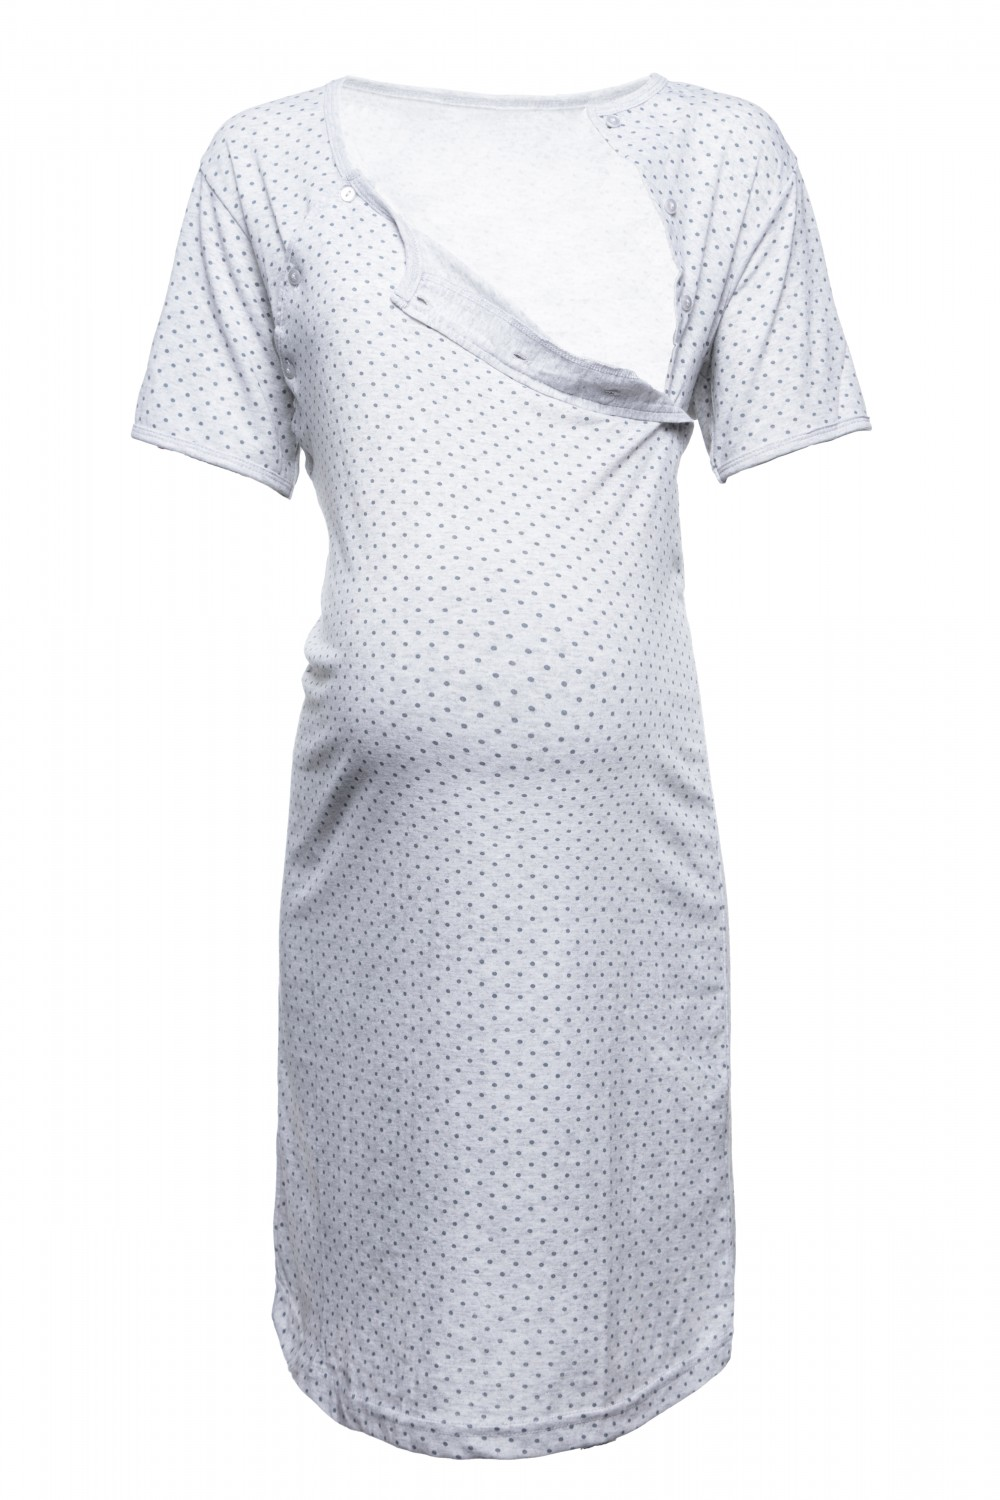 Happy mama womens maternity hospital gown nightie polka dot happy mama women 039 s maternity hospital gown ombrellifo Image collections